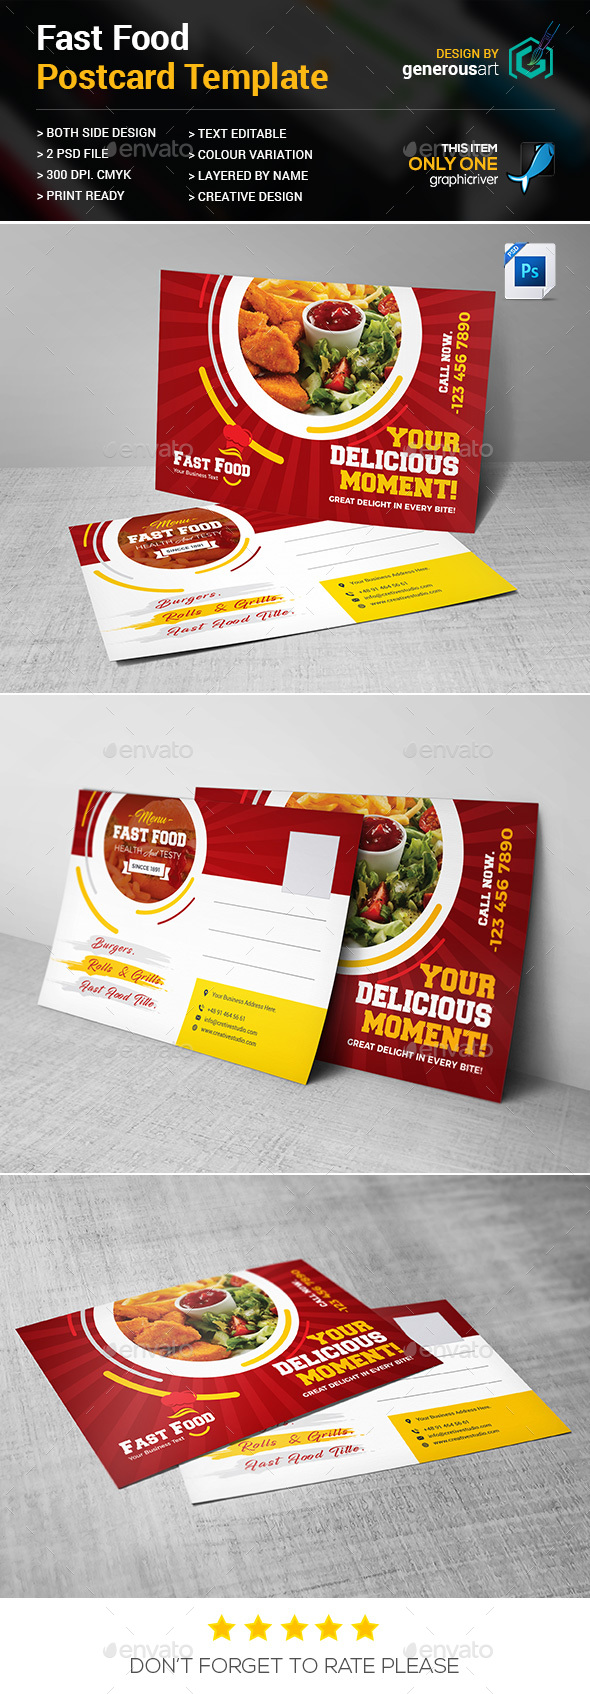 Fast Food Postcard - Cards & Invites Print Templates